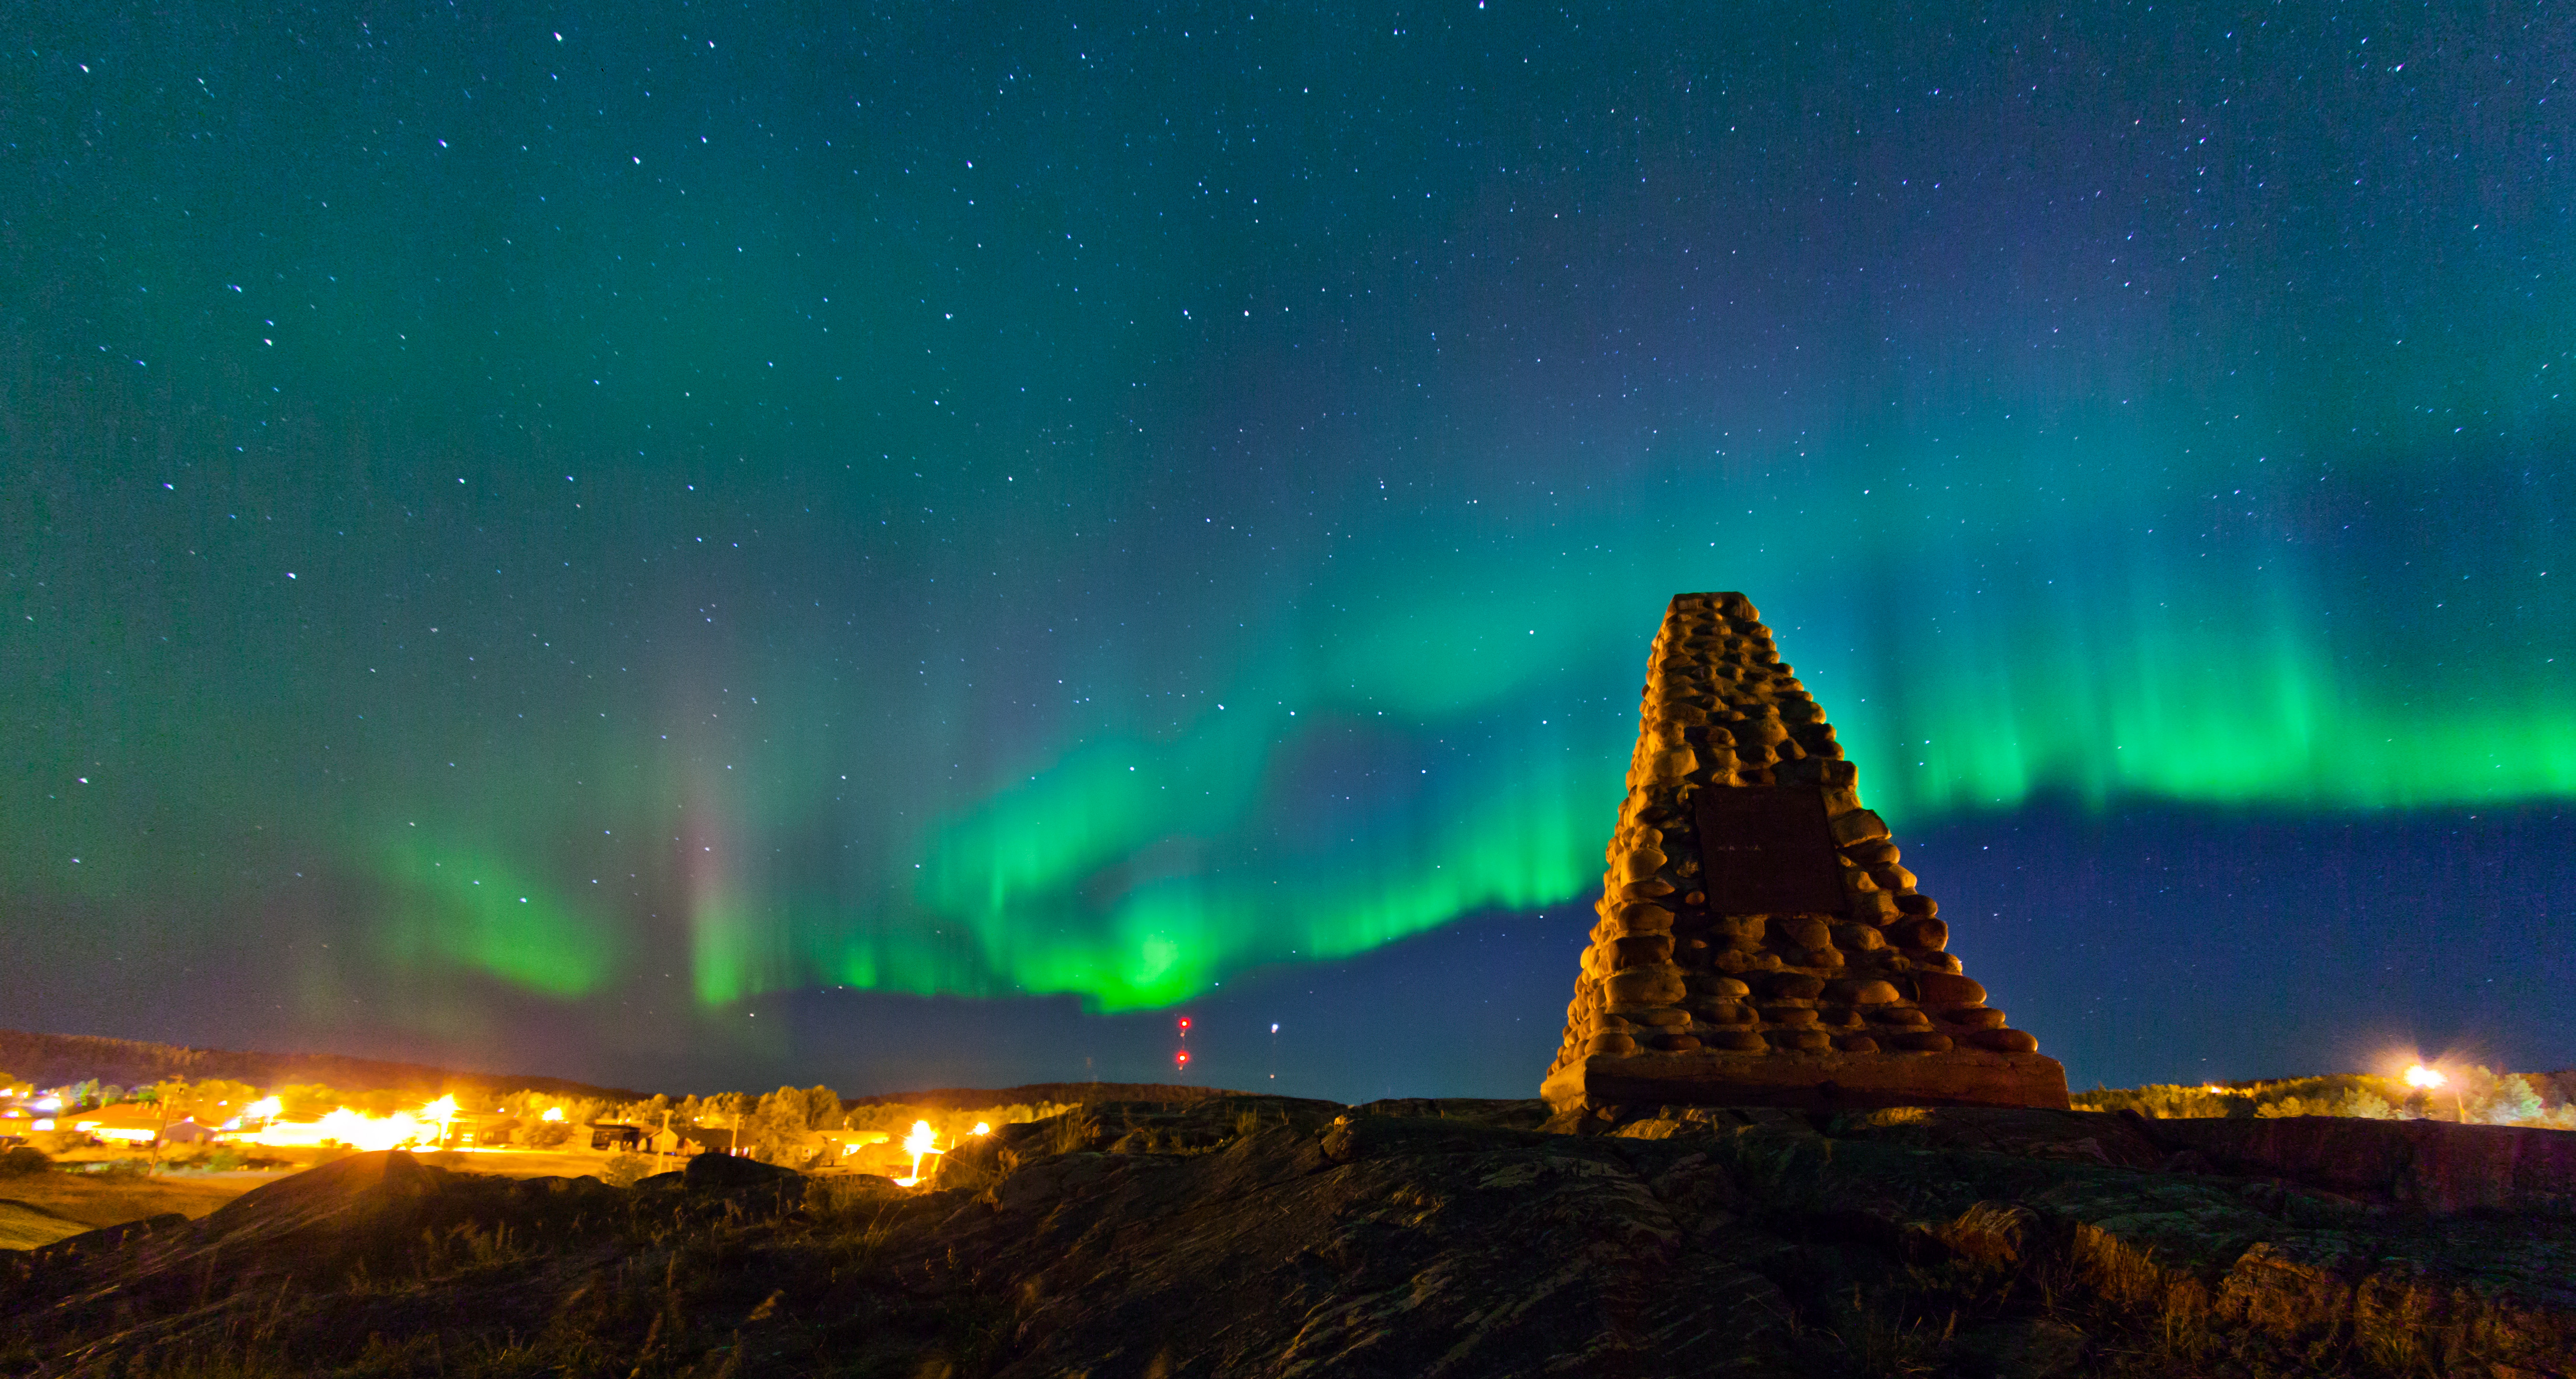 FORT CHIPEWYAN, ALTA.: SEPTEMBER, 13, 2013: Northern lights fill the sky over monument hill in Fort Chipewyan, Alta. on September 13, 2013. Established in 1788, Fort Chipewyan is the oldest settlement in Alberta. (Ryan Jackson / Edmonton Journal) Note this picture was corrected for fisheye lens distortion to keep the horizon straight as it appeared in real life. ORG XMIT: POS1309262000474575